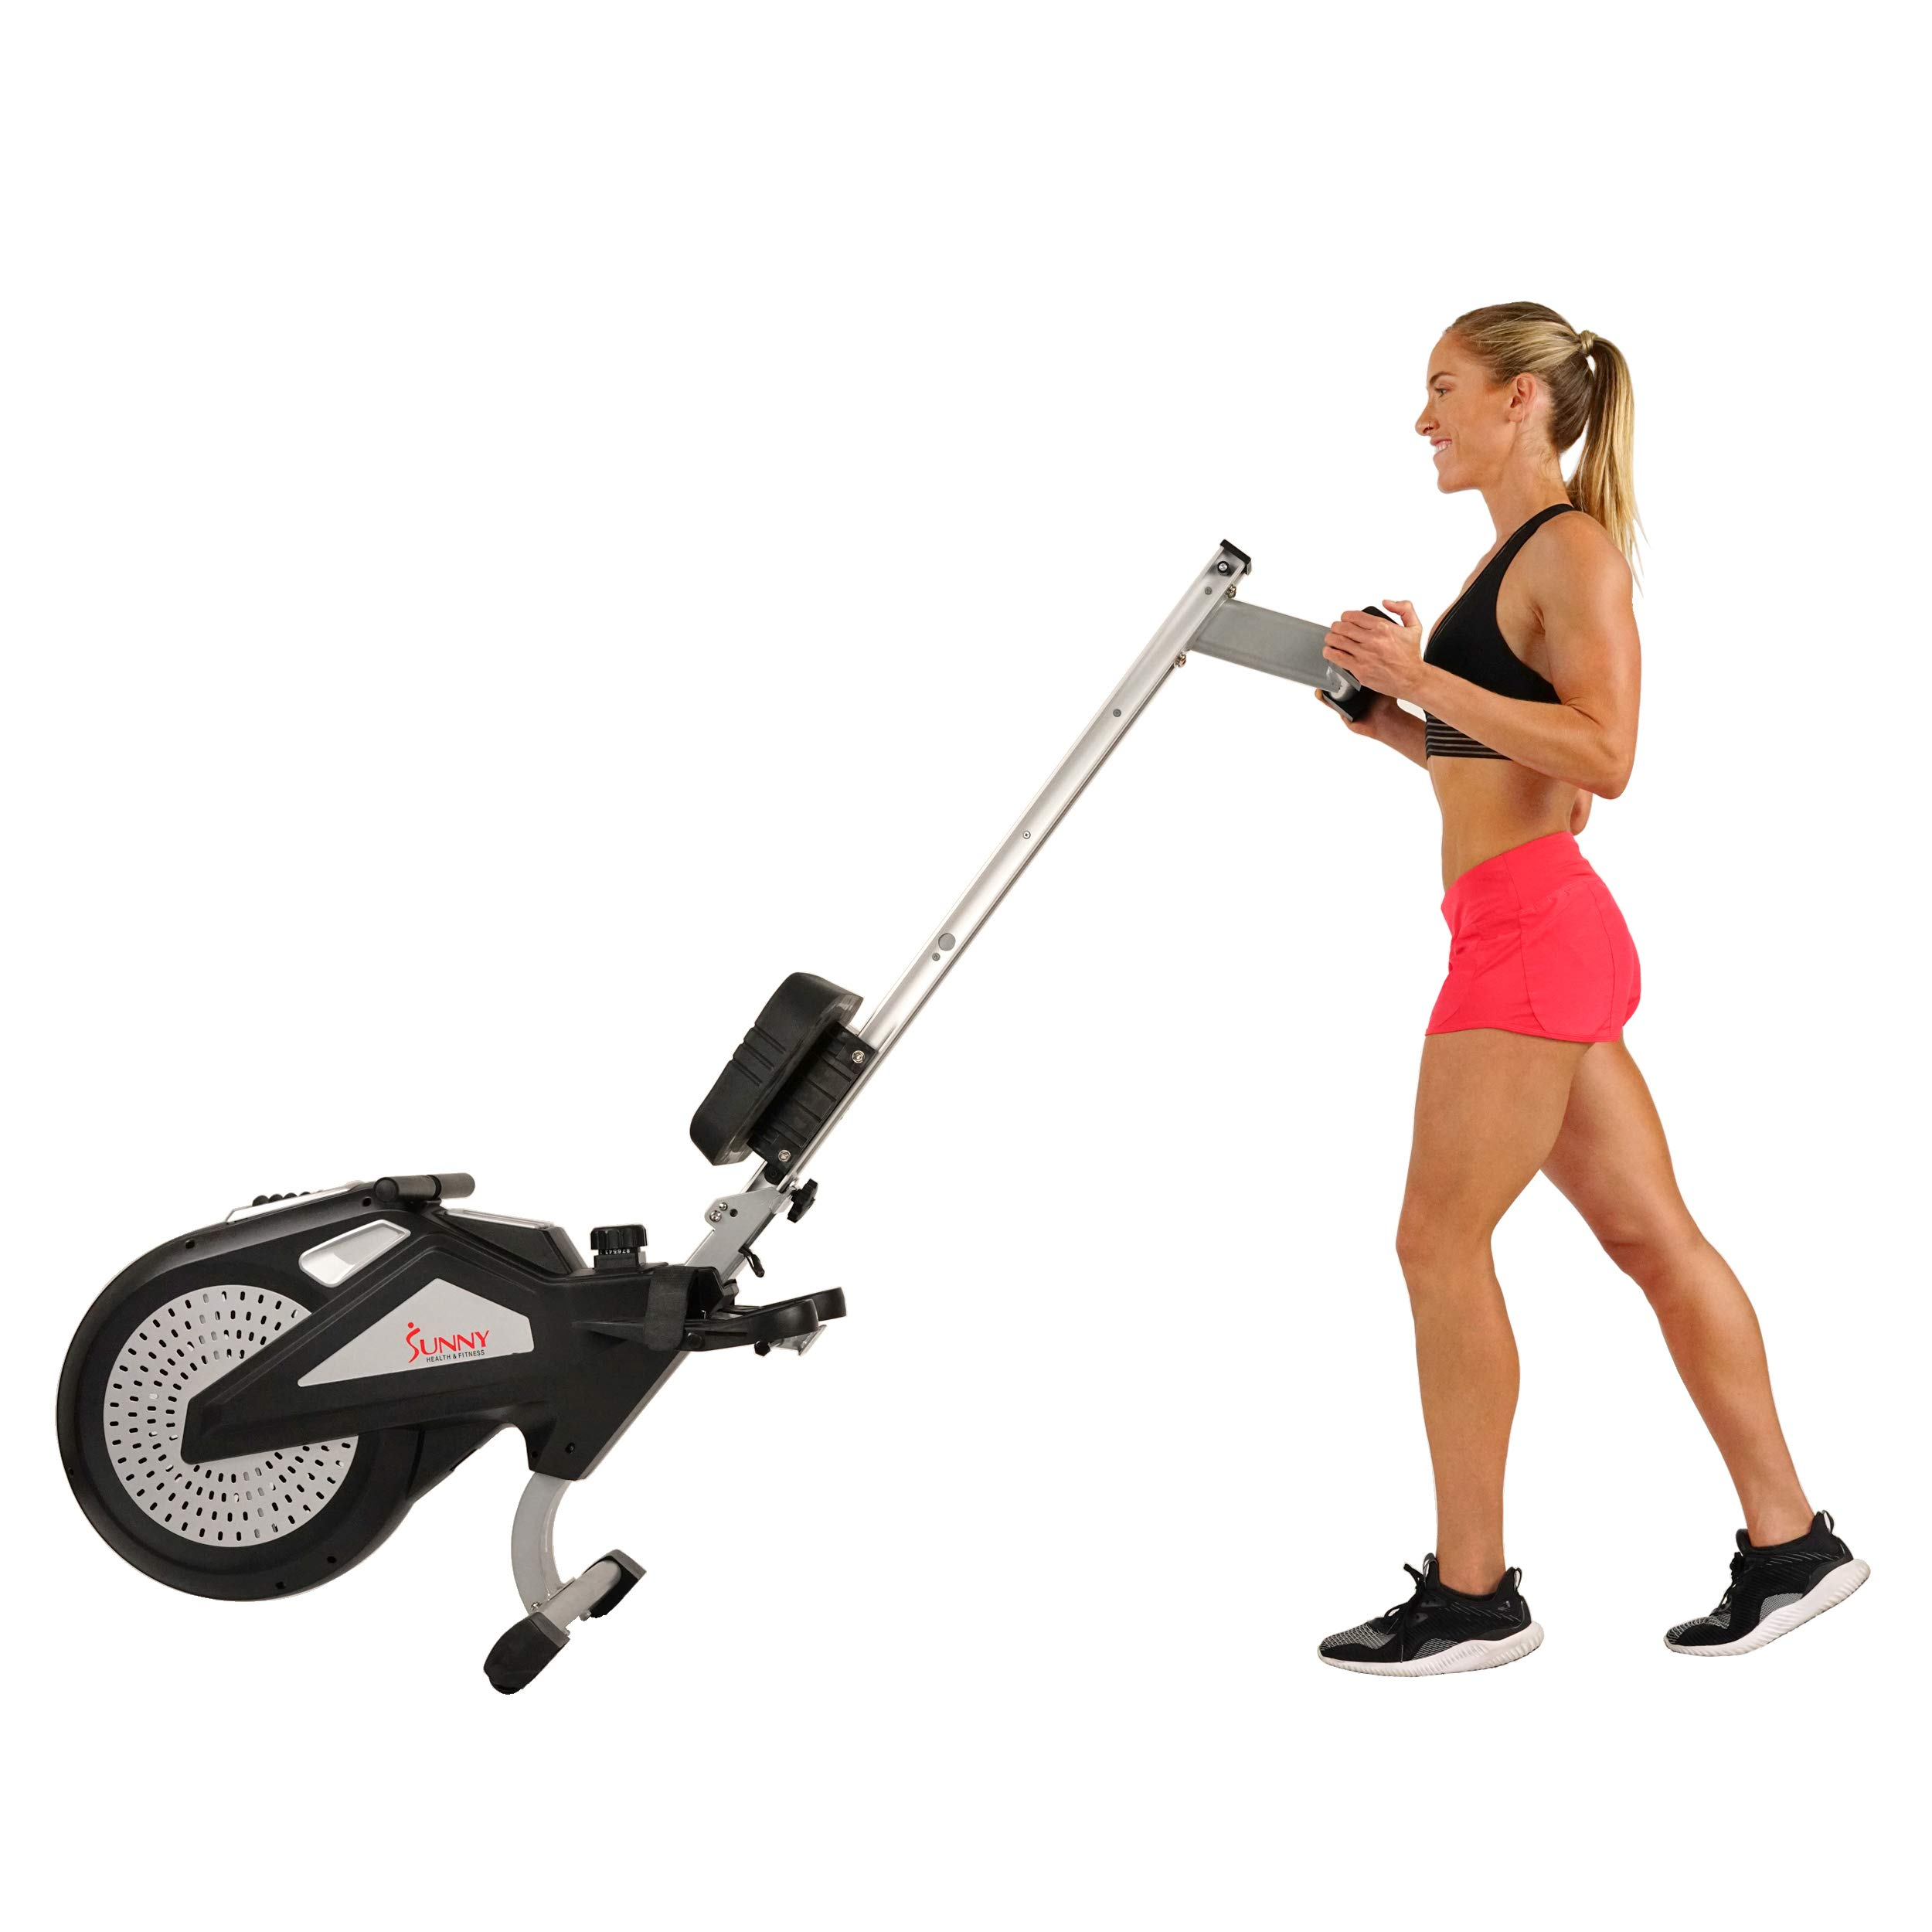 Sunny Health & Fitness Air Rower Rowing Machine w/ LCD Monitor, Dual Belt and Air Resistance SF-RW5623 by Sunny Health & Fitness (Image #9)